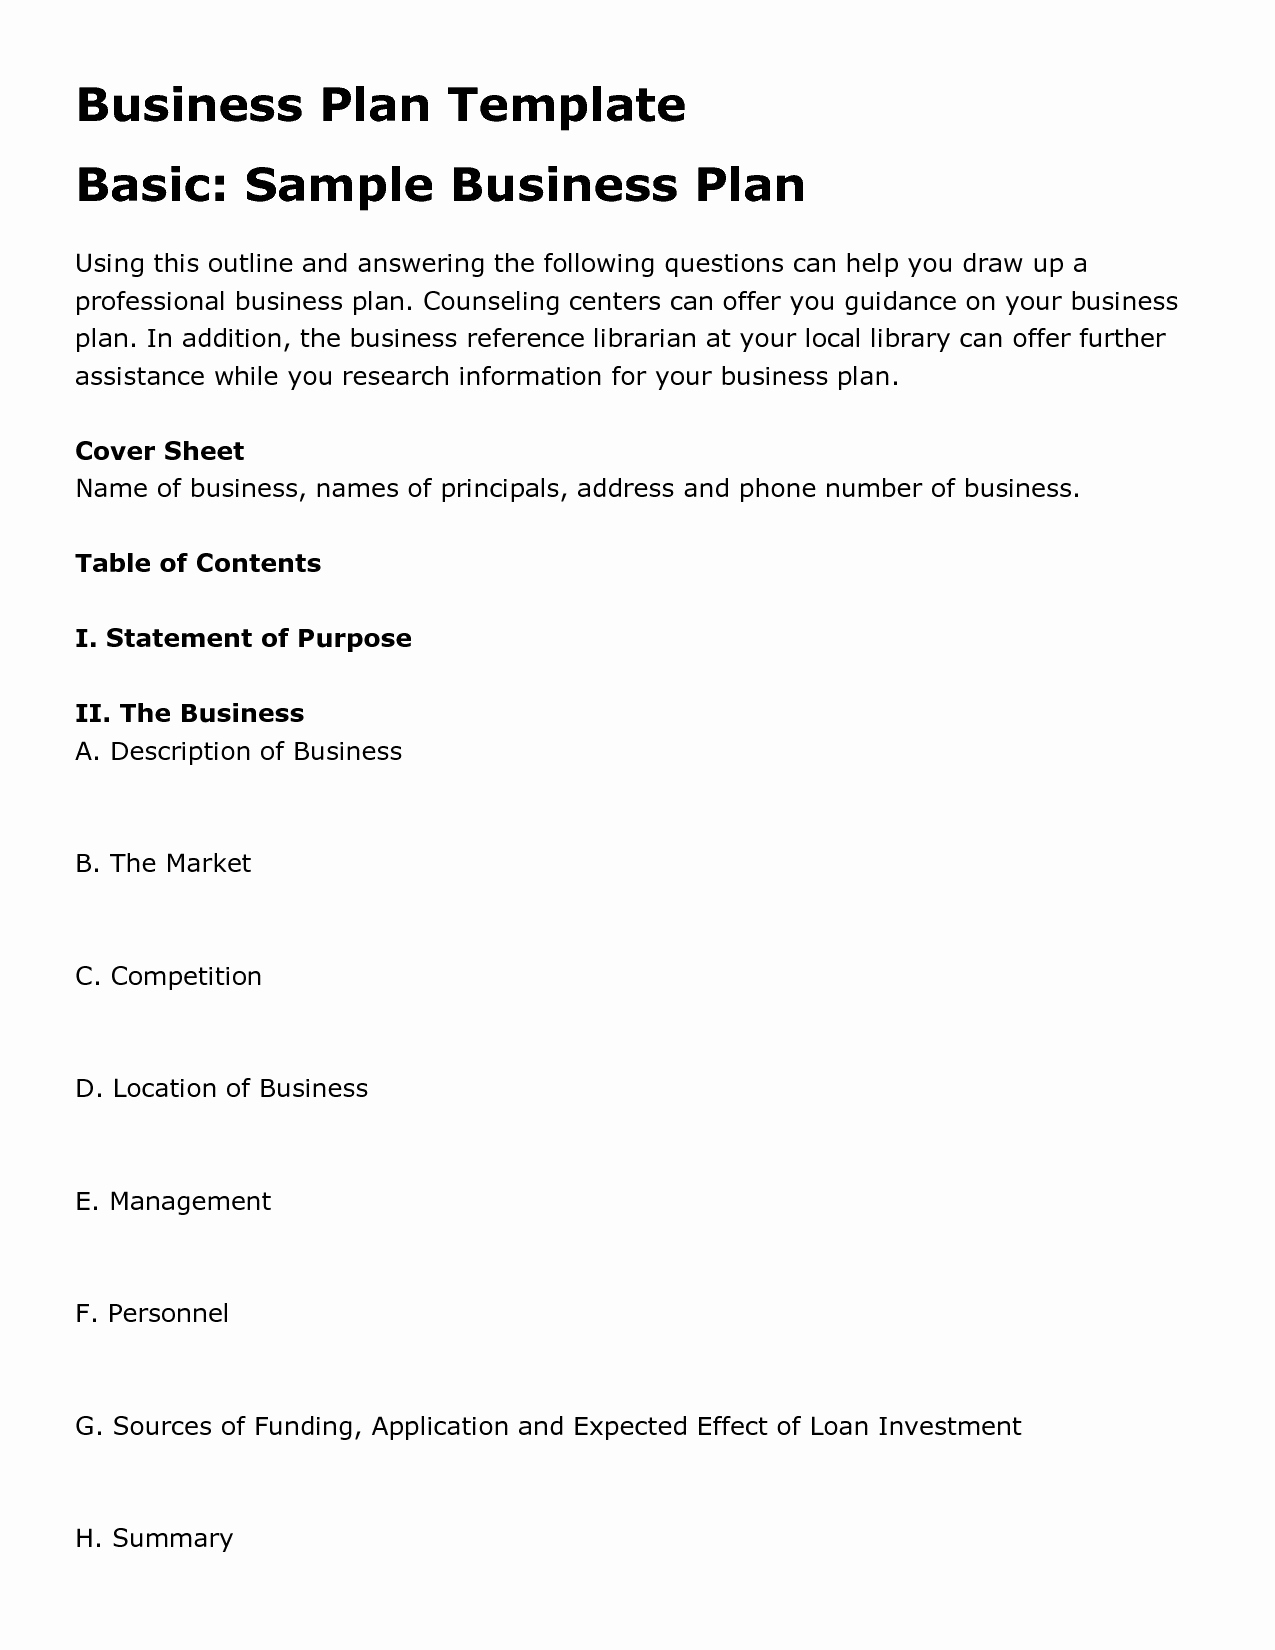 Free Printable Business Plan Template Unique Printable Sample Business Plan Template form